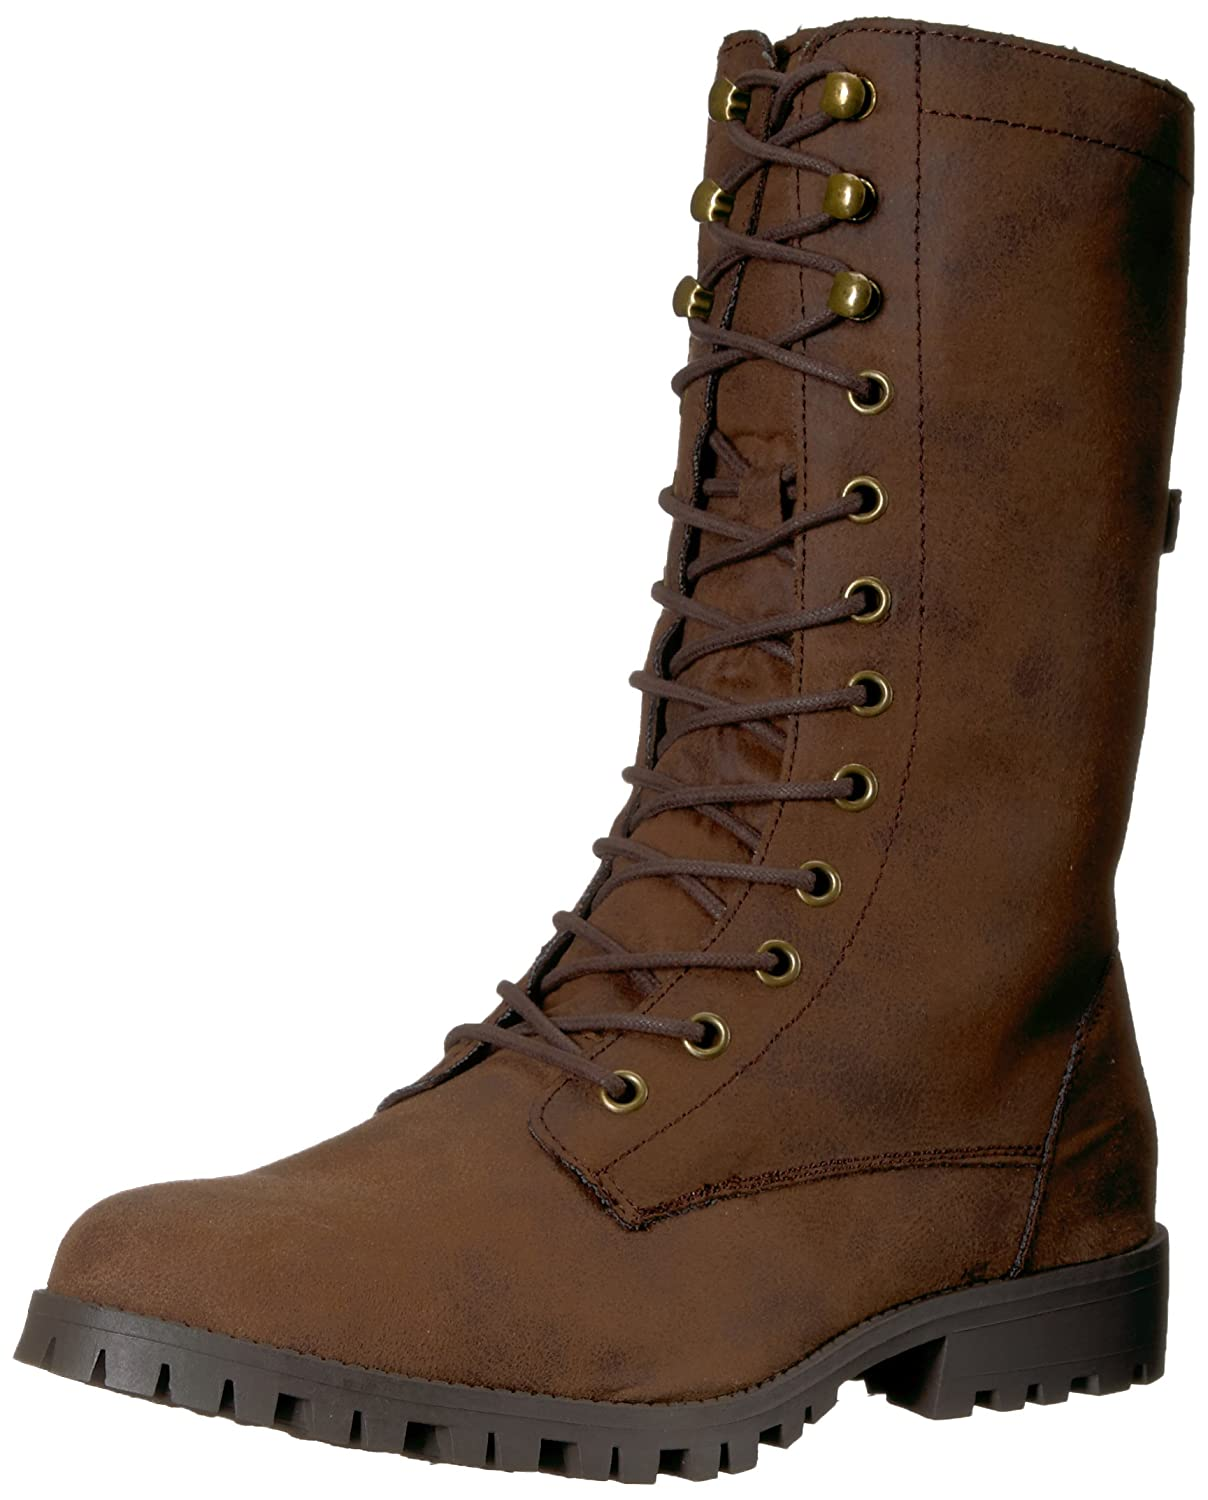 Sugar Women's Tegan Lace-up Mid-Calf Combat Boot B076591V9L 10.5 B(M) US|Brown